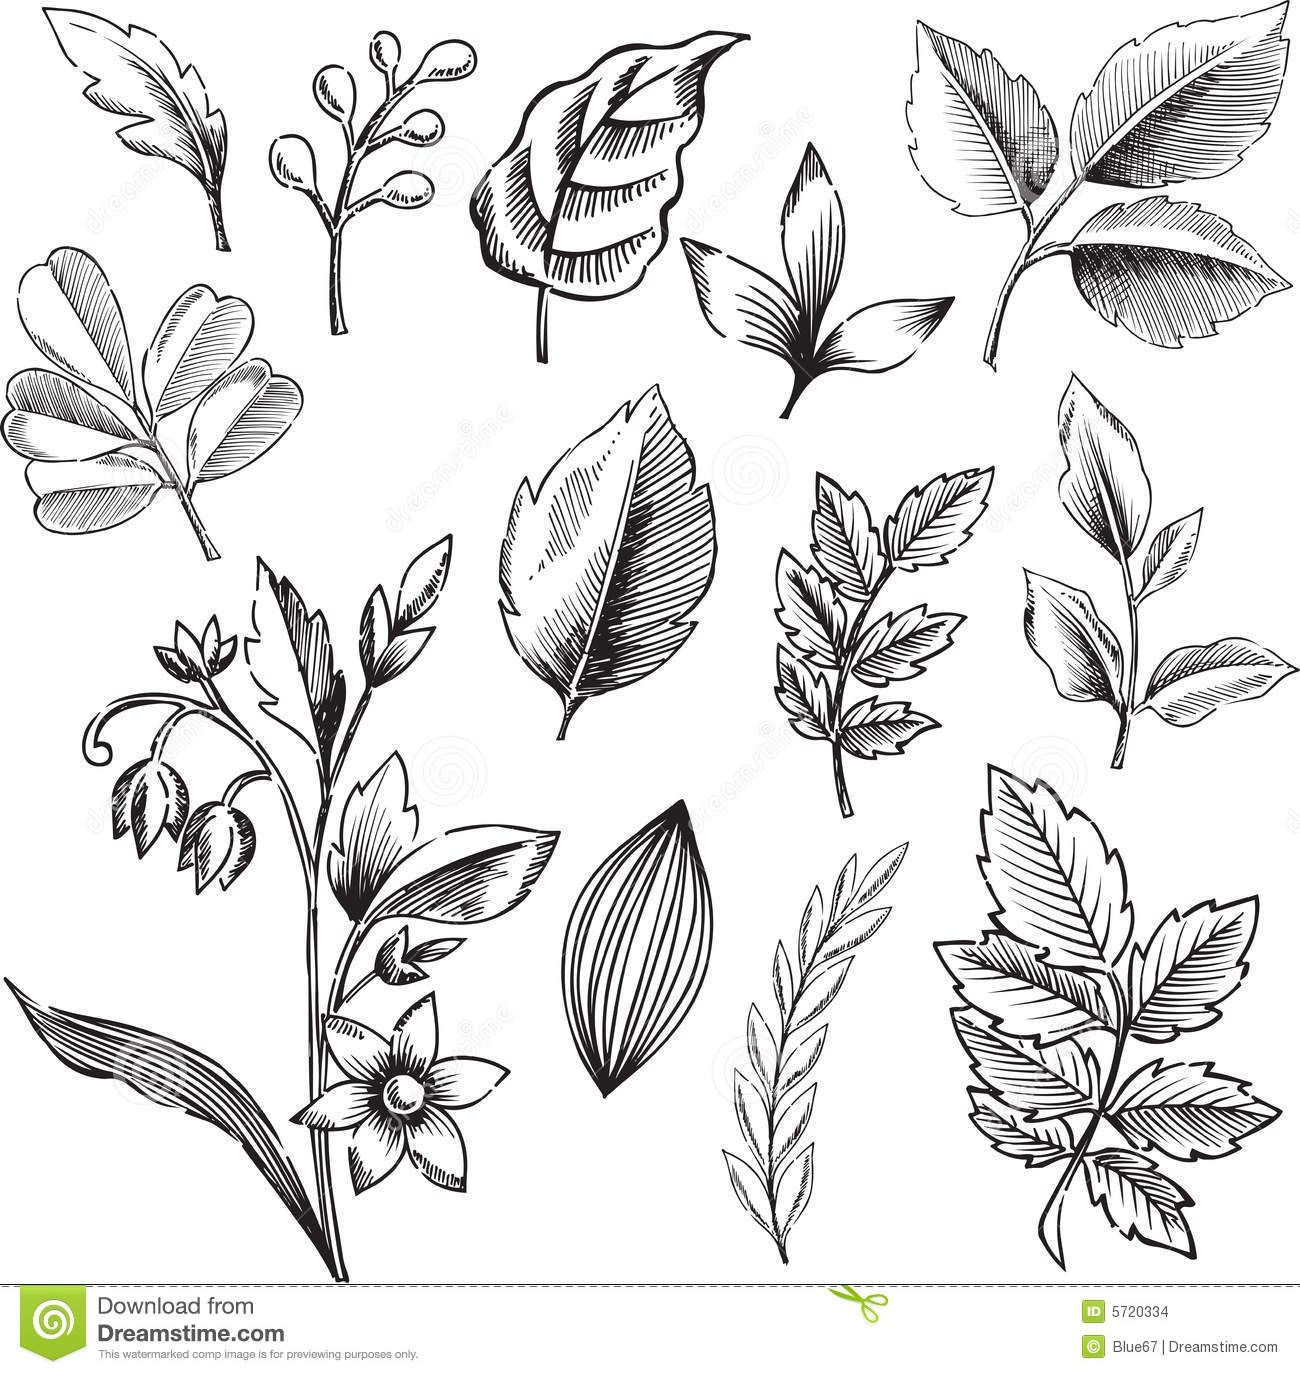 Leaf Illustrations Black And White